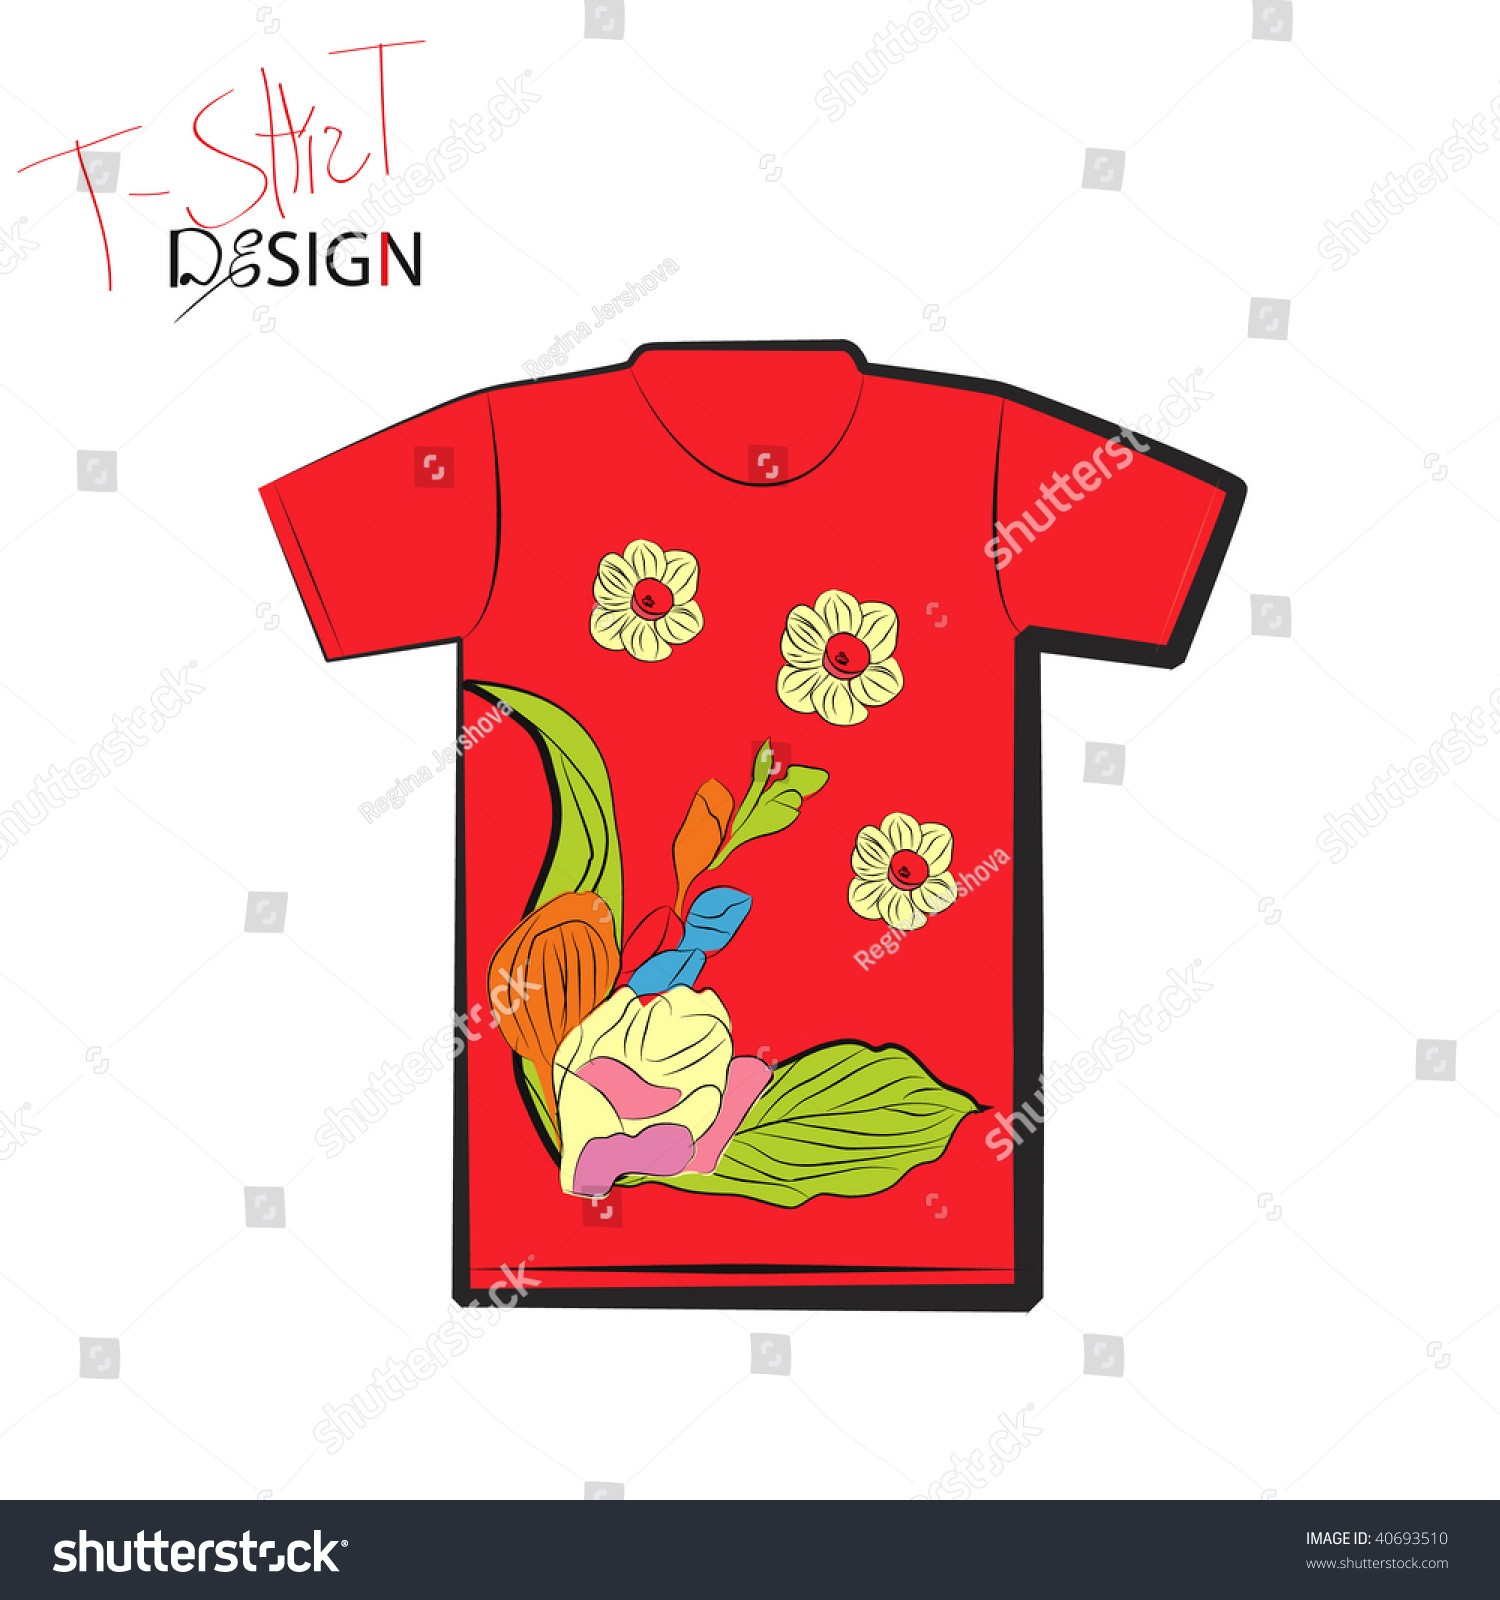 T shirt design with fresia and narcissus flowers stock for Shutterstock t shirt design